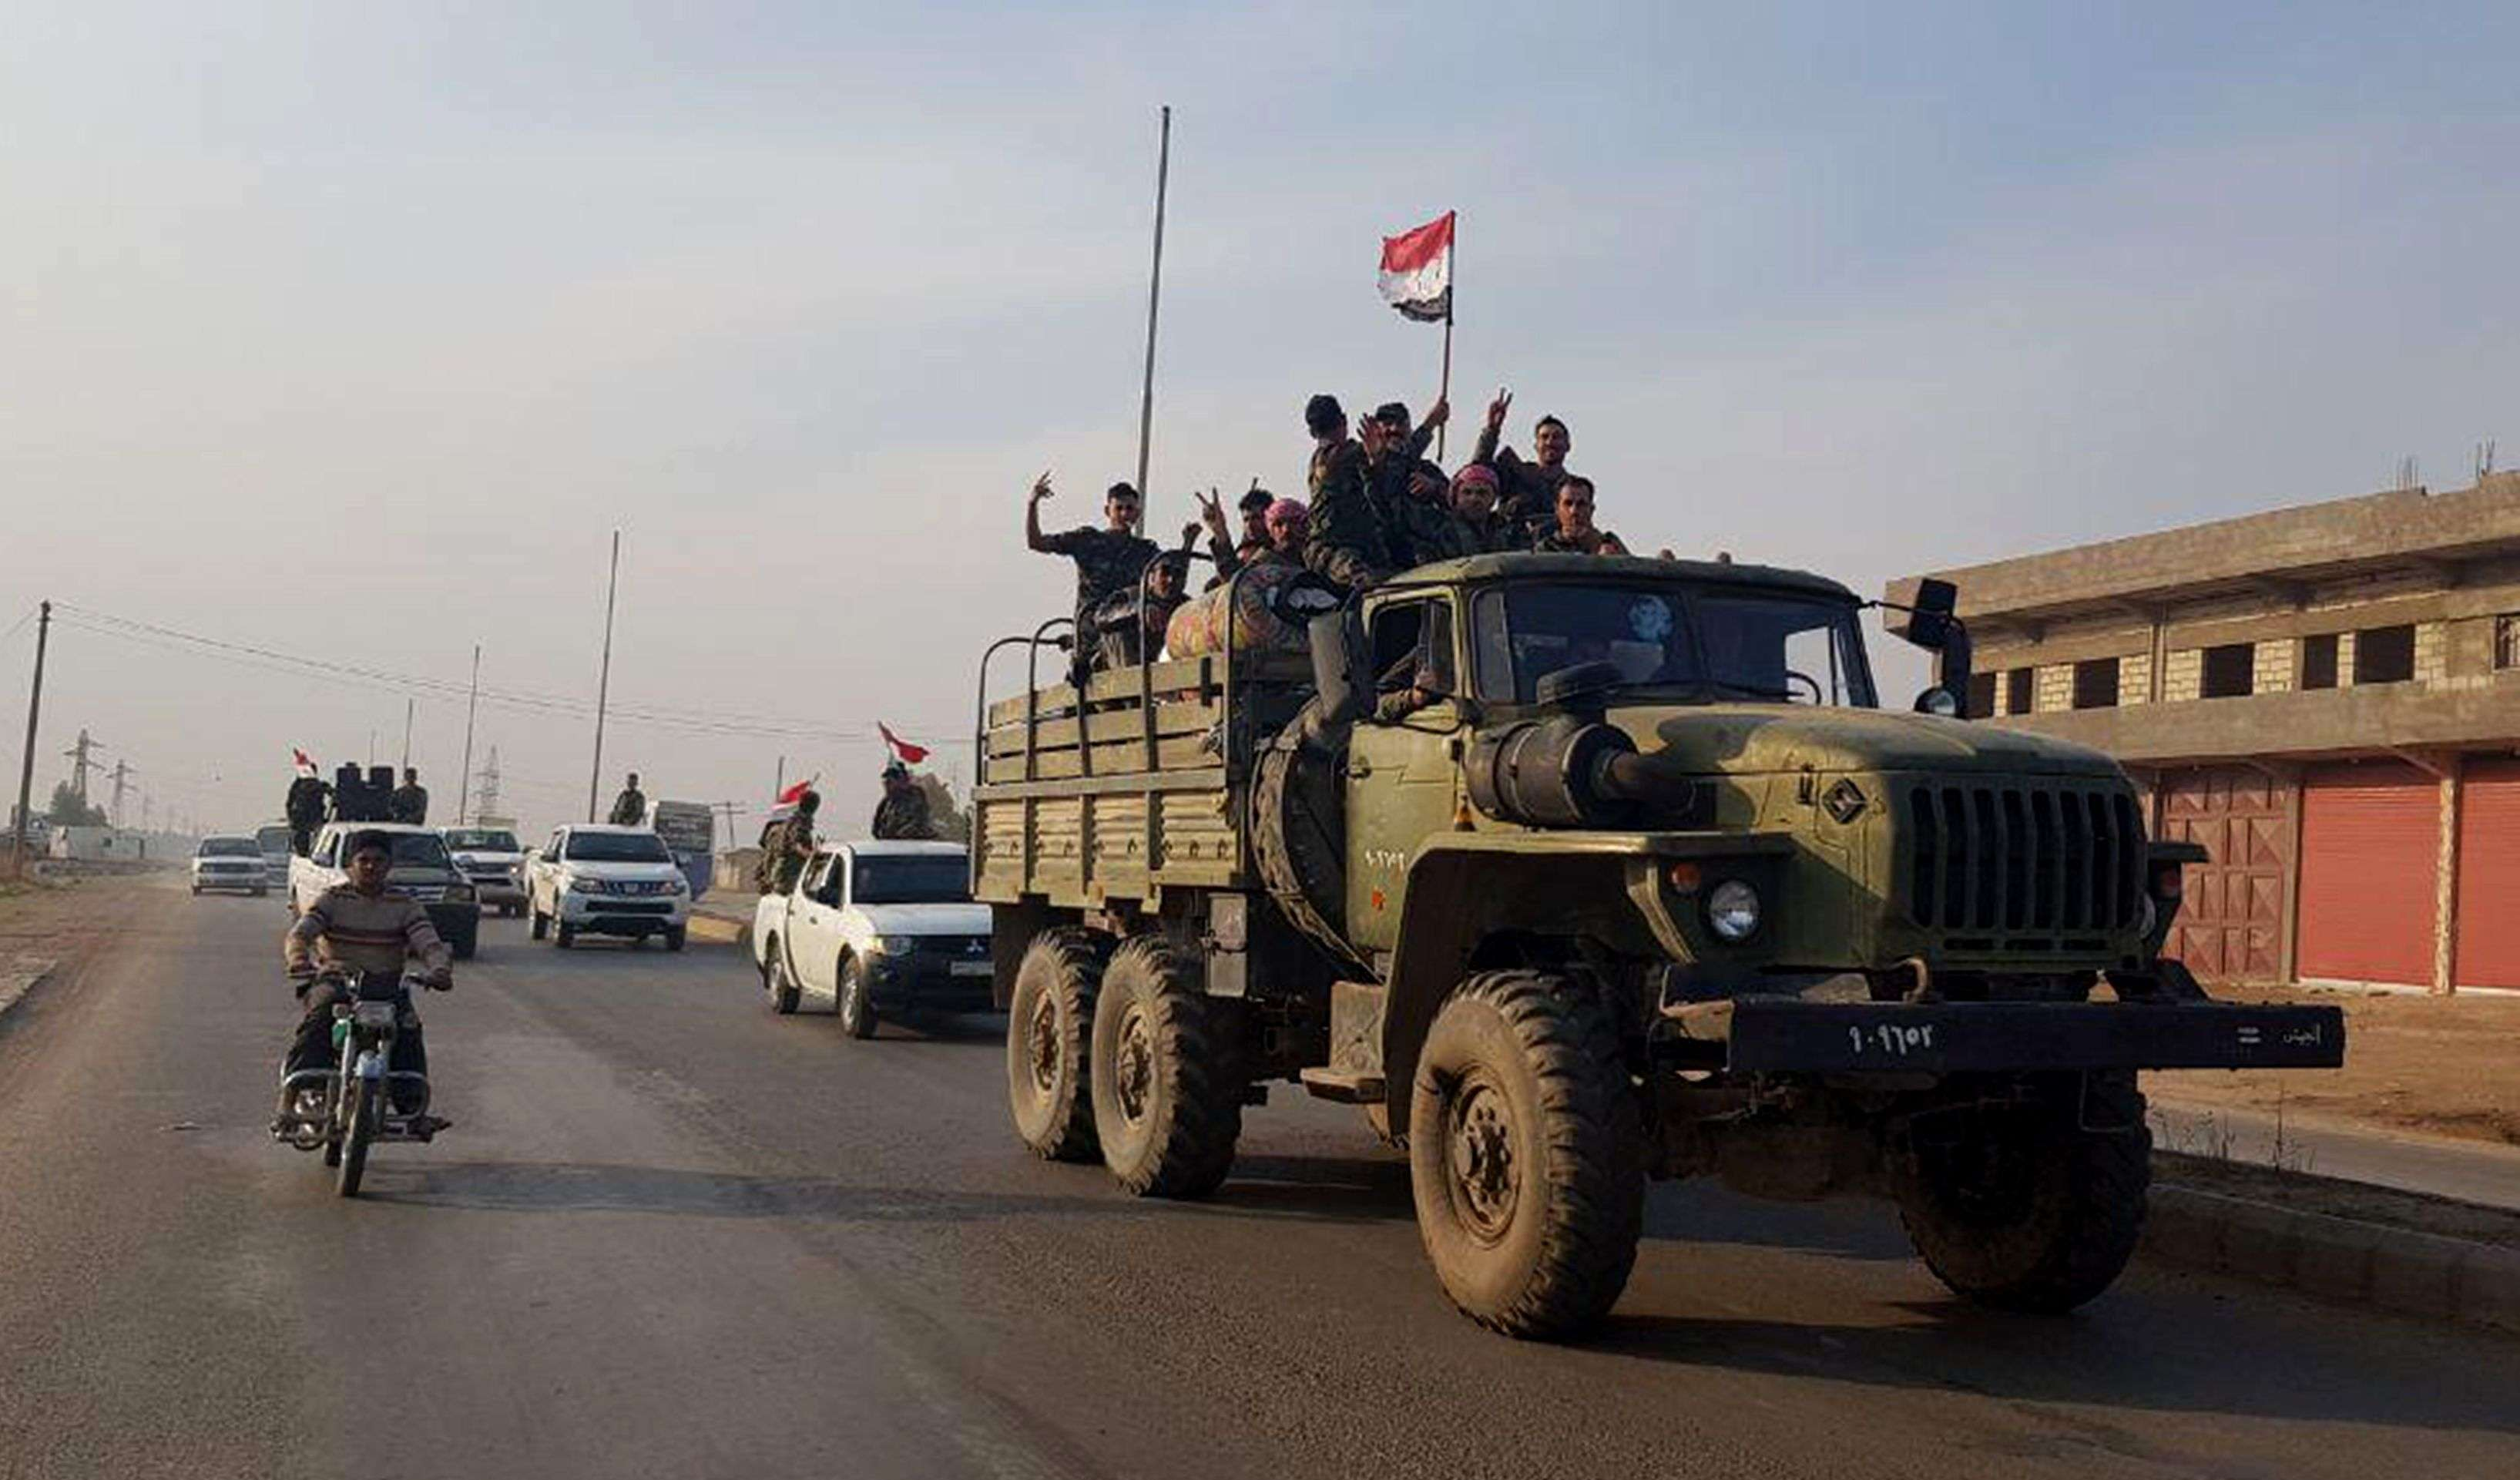 Syrian troops deploying in an area in the northeastern Syrian Hasakeh province on the border with Turkey, part of a deal reached with the Kurds last month, November 14, 2019. (AFP)